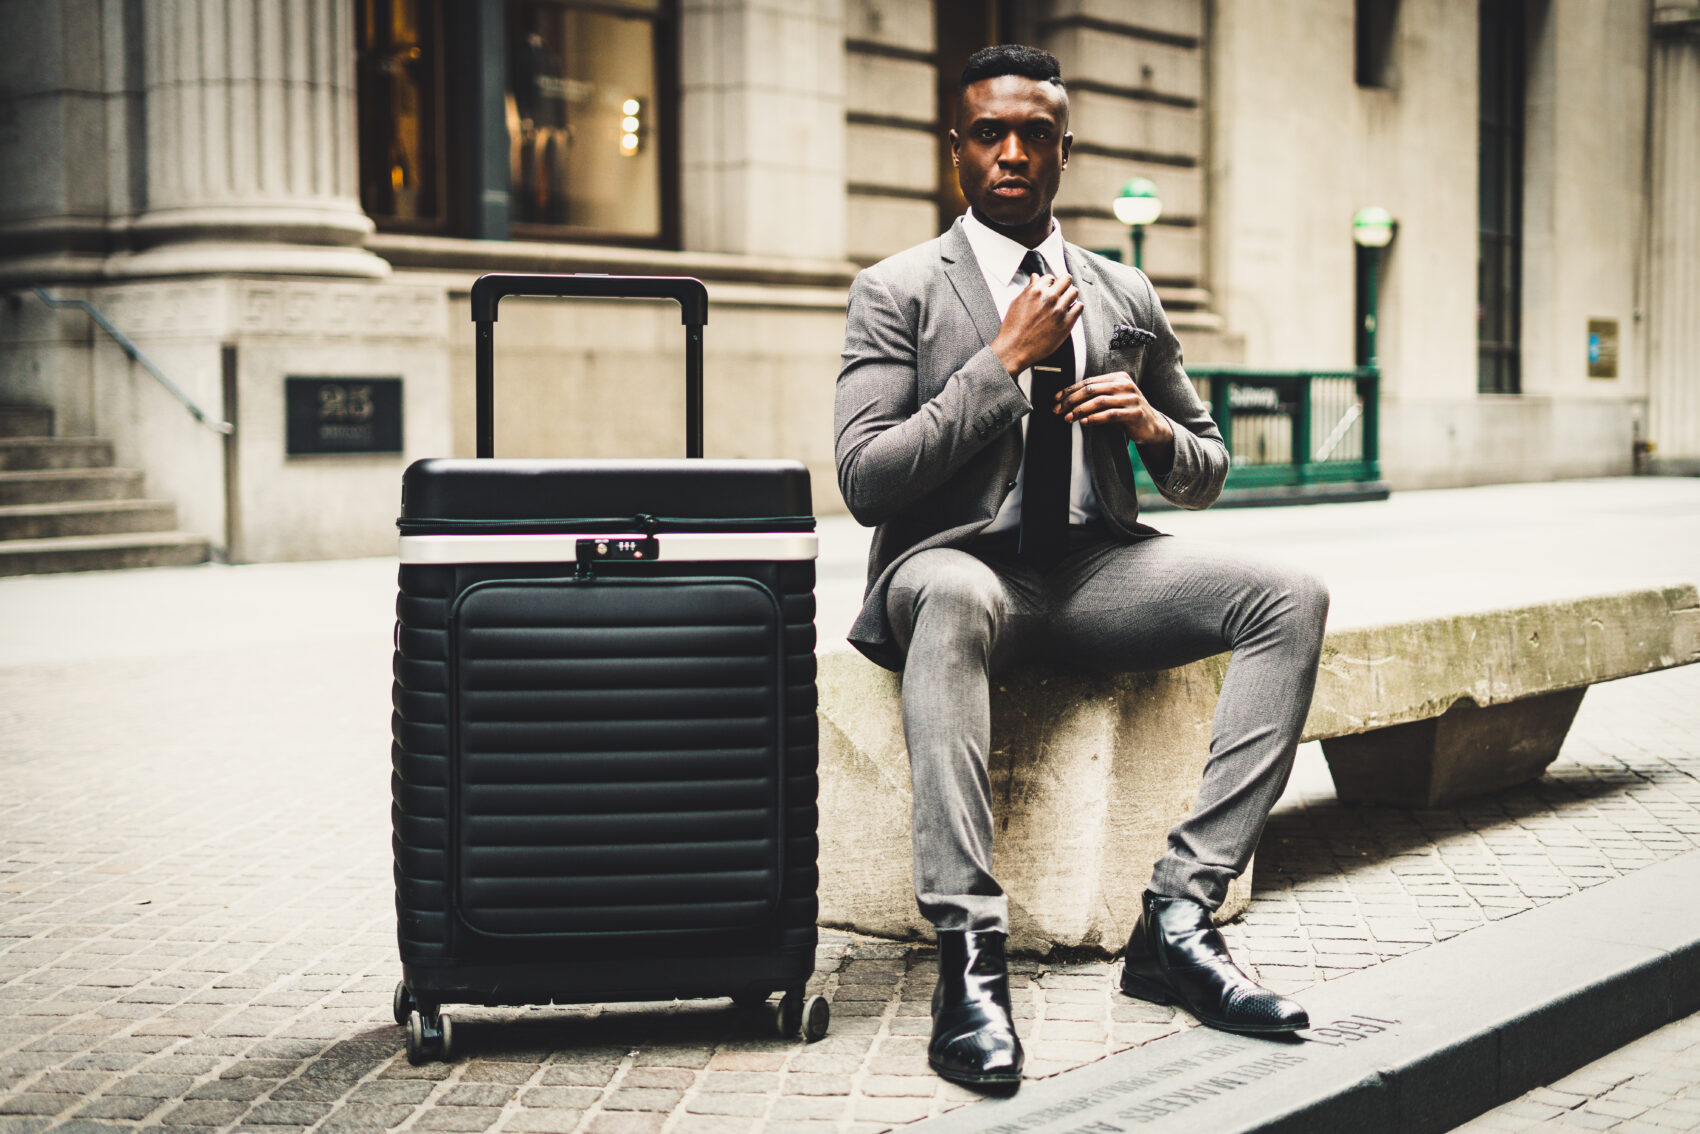 Pull Up suitcase